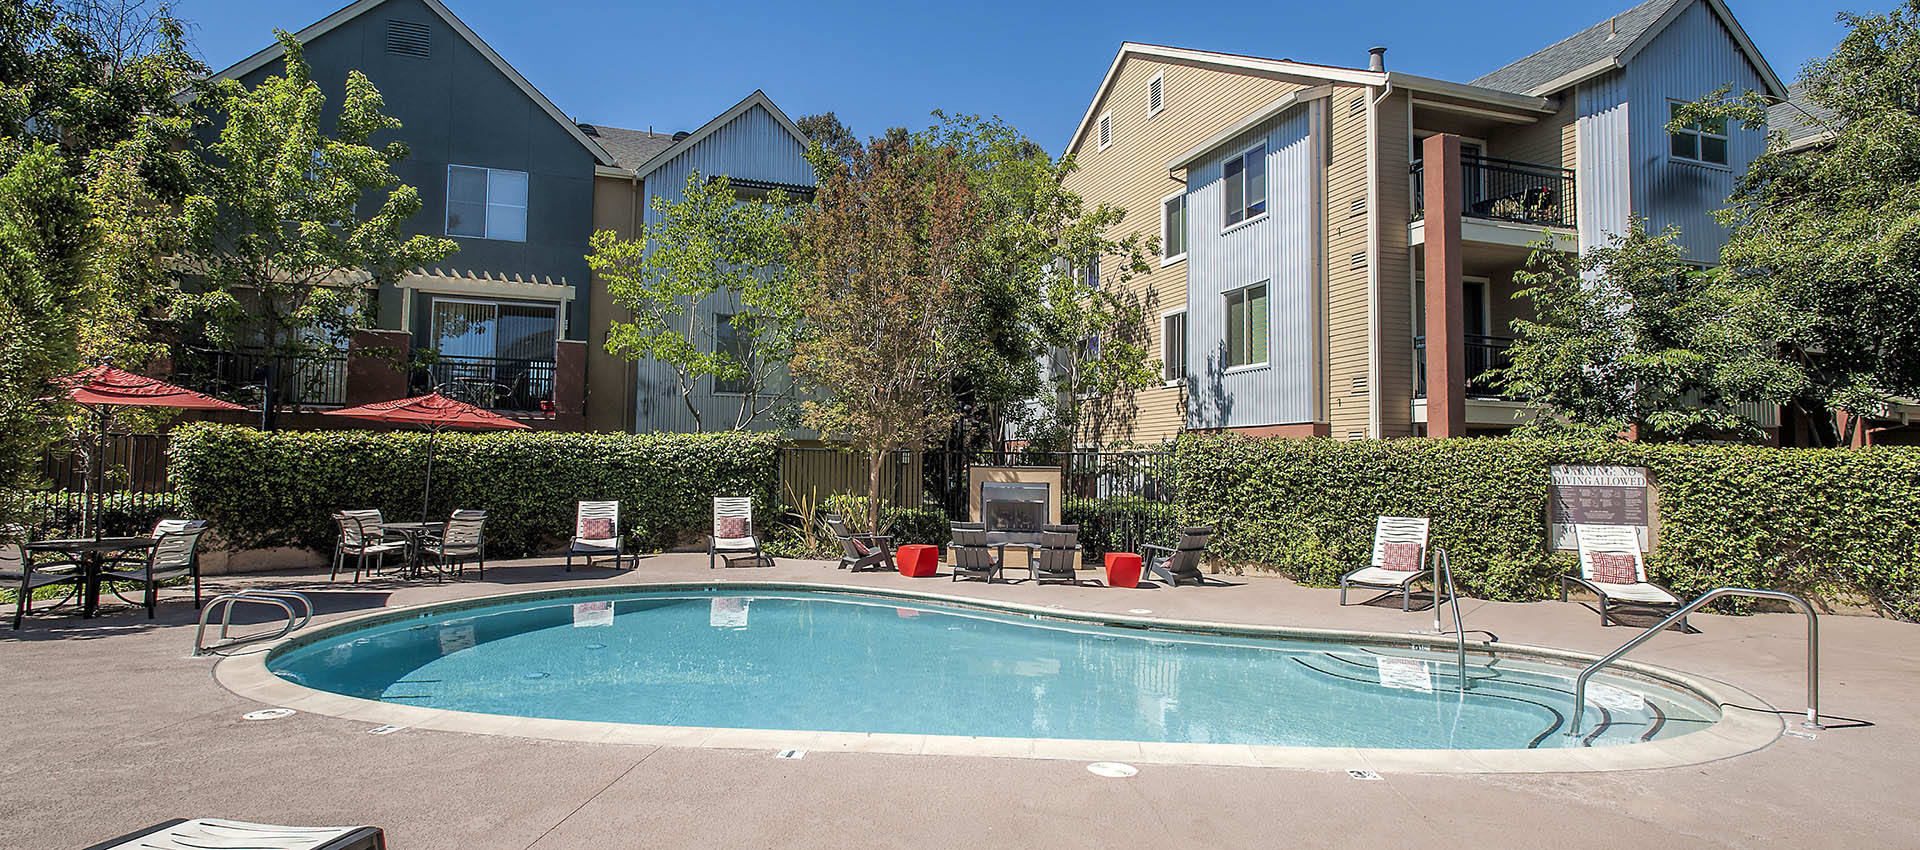 Enjoy The Resort Style Swimming Pool at Azure Apartment Homes in Petaluma, California